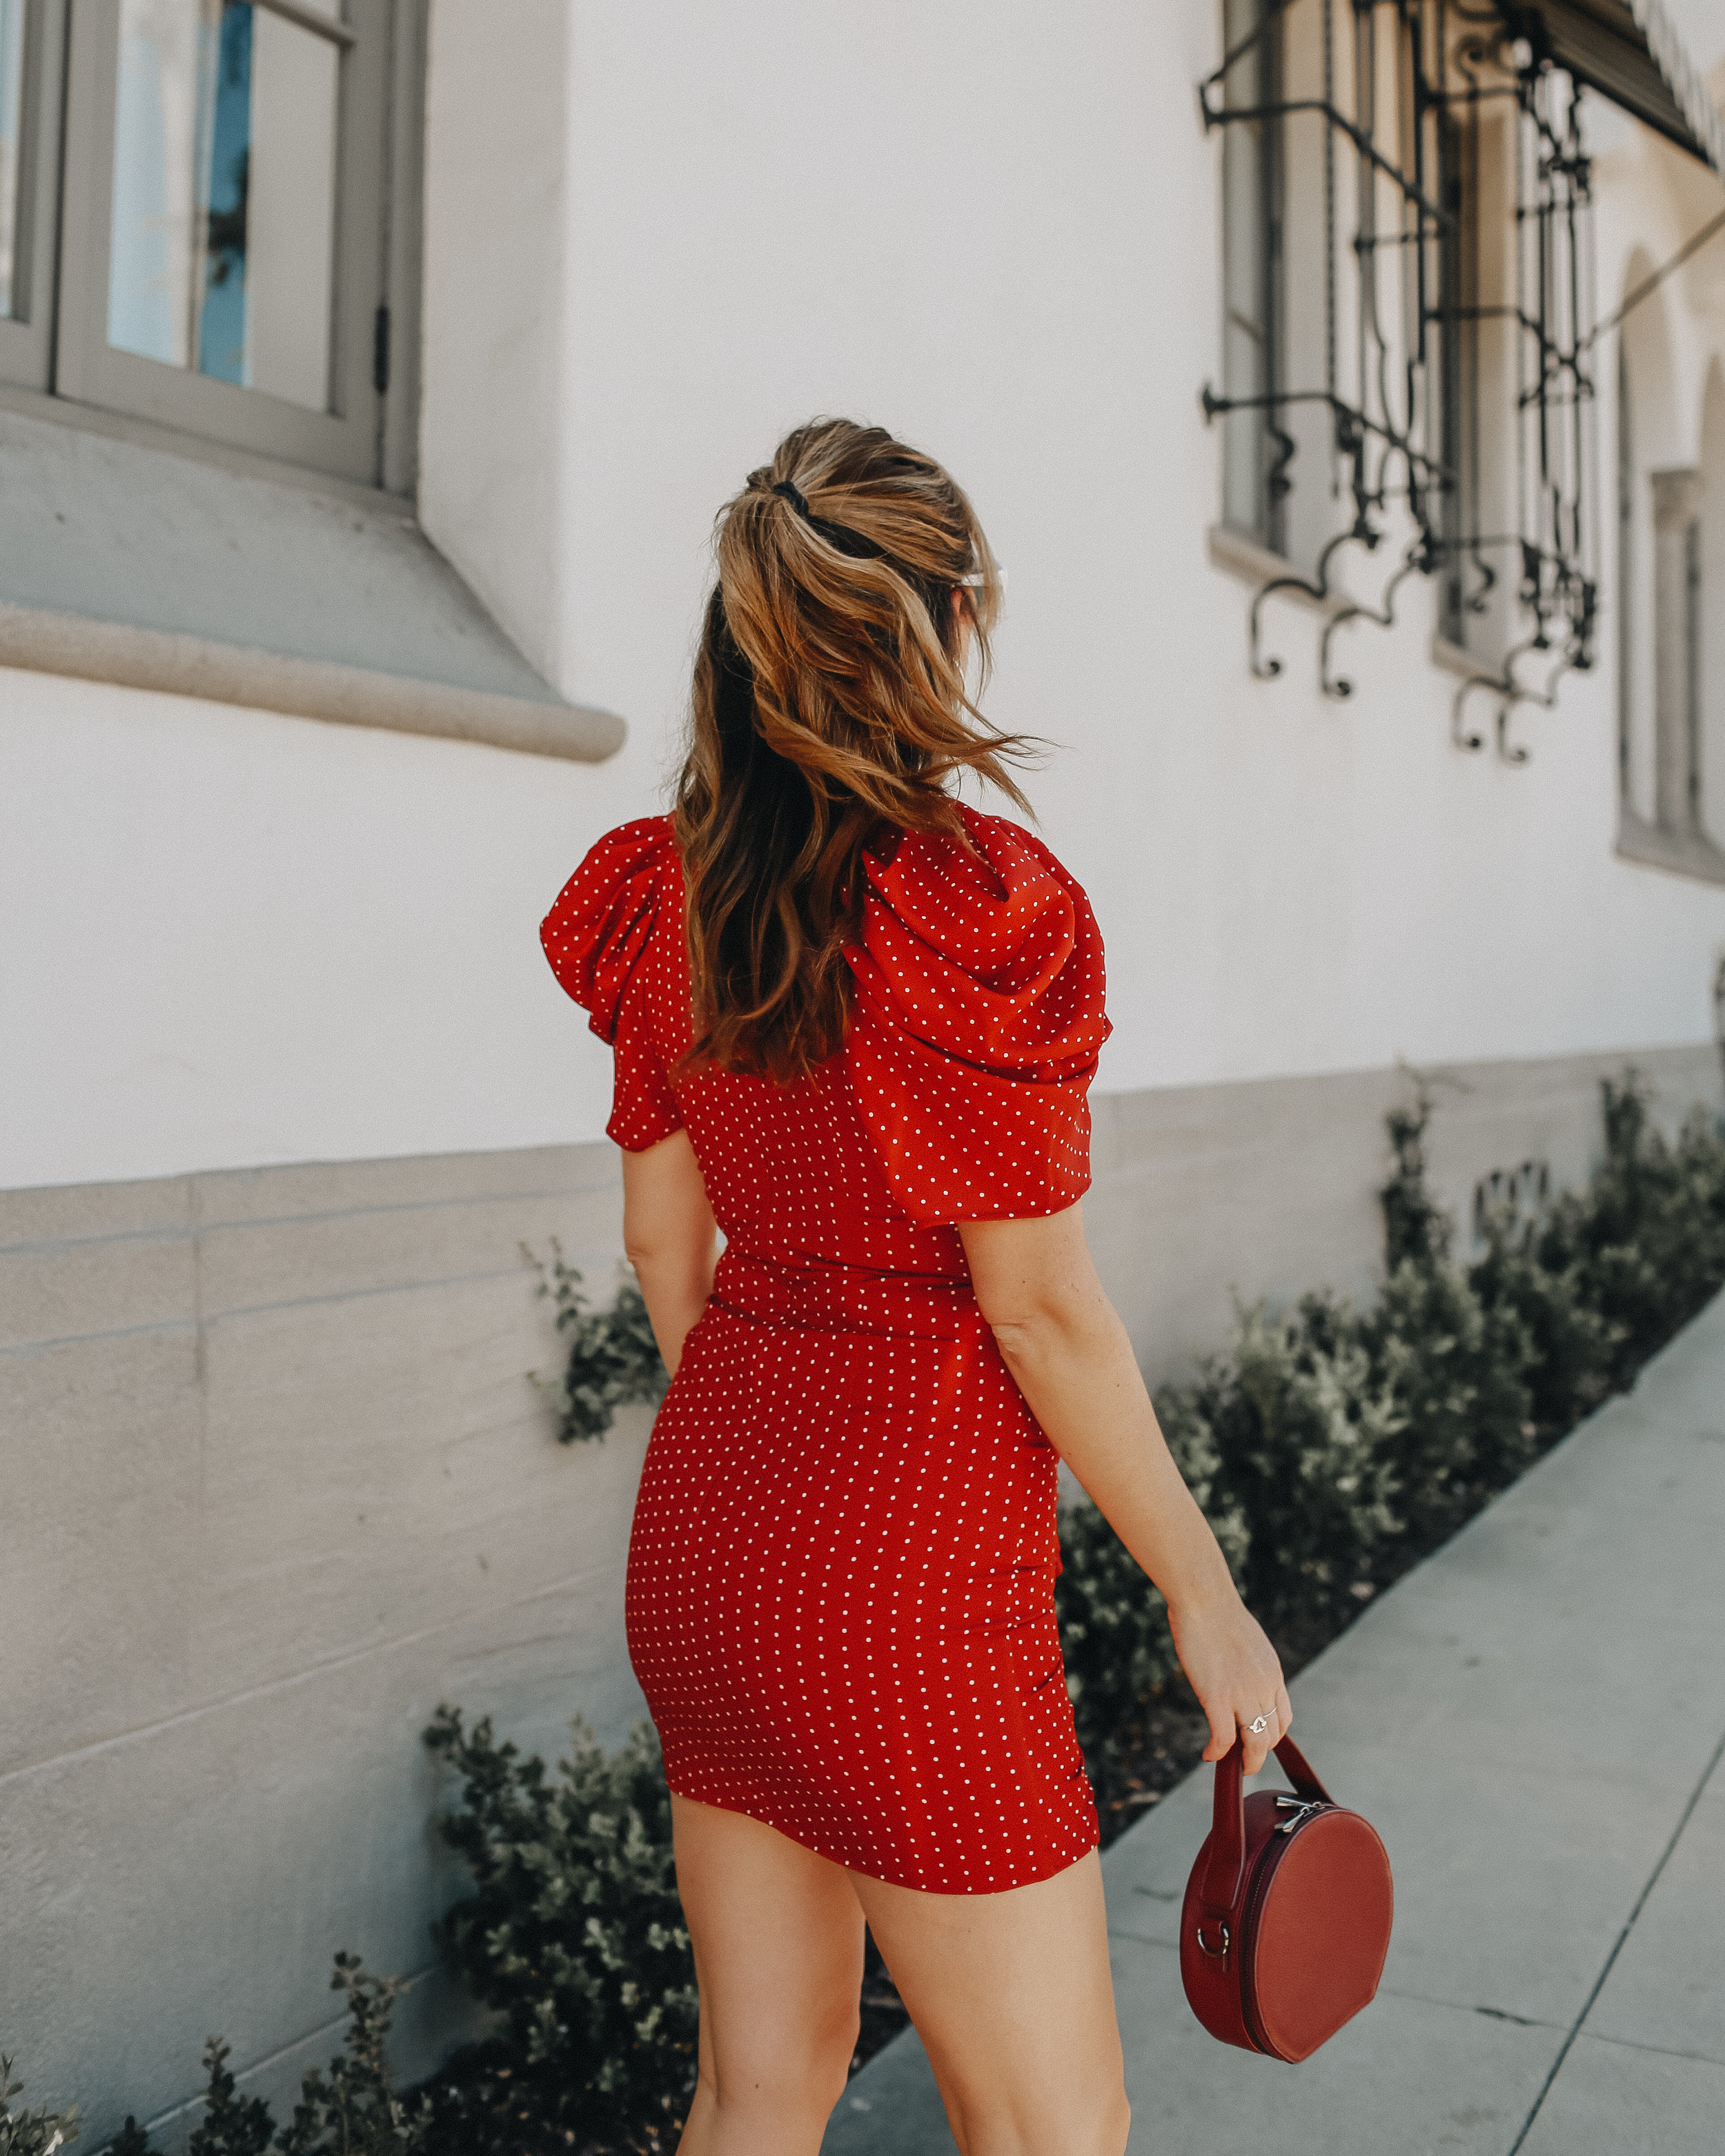 The Style Sauce // Valentine's day outfit ideas // Style blogger red dress